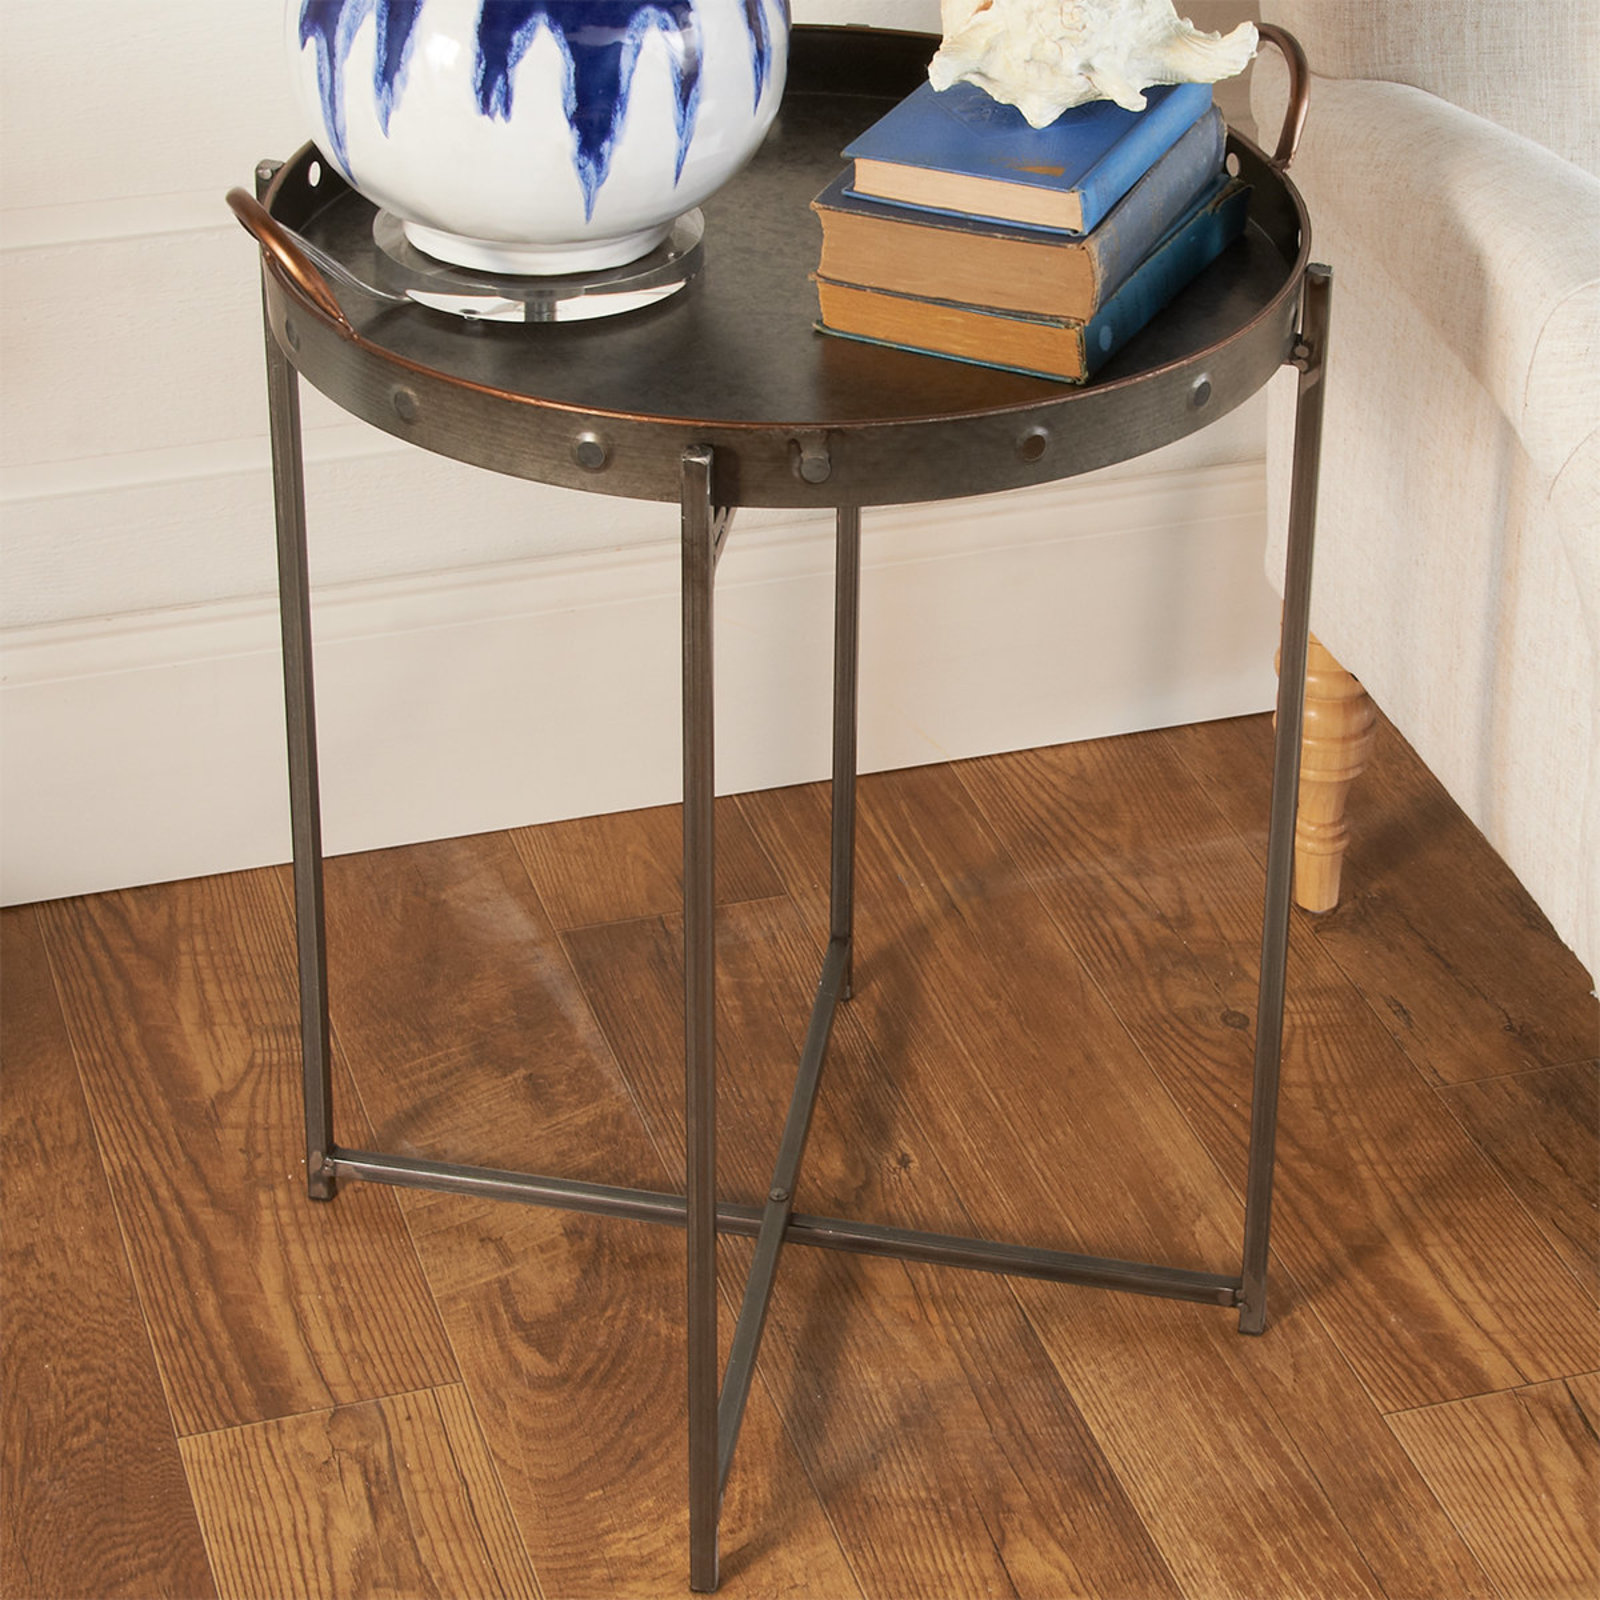 galvanized tray top accent table shades light metal bronze white concrete coffee mirrored round pedestal purple lamp kitchen and stools small outdoor wrought iron hutch box